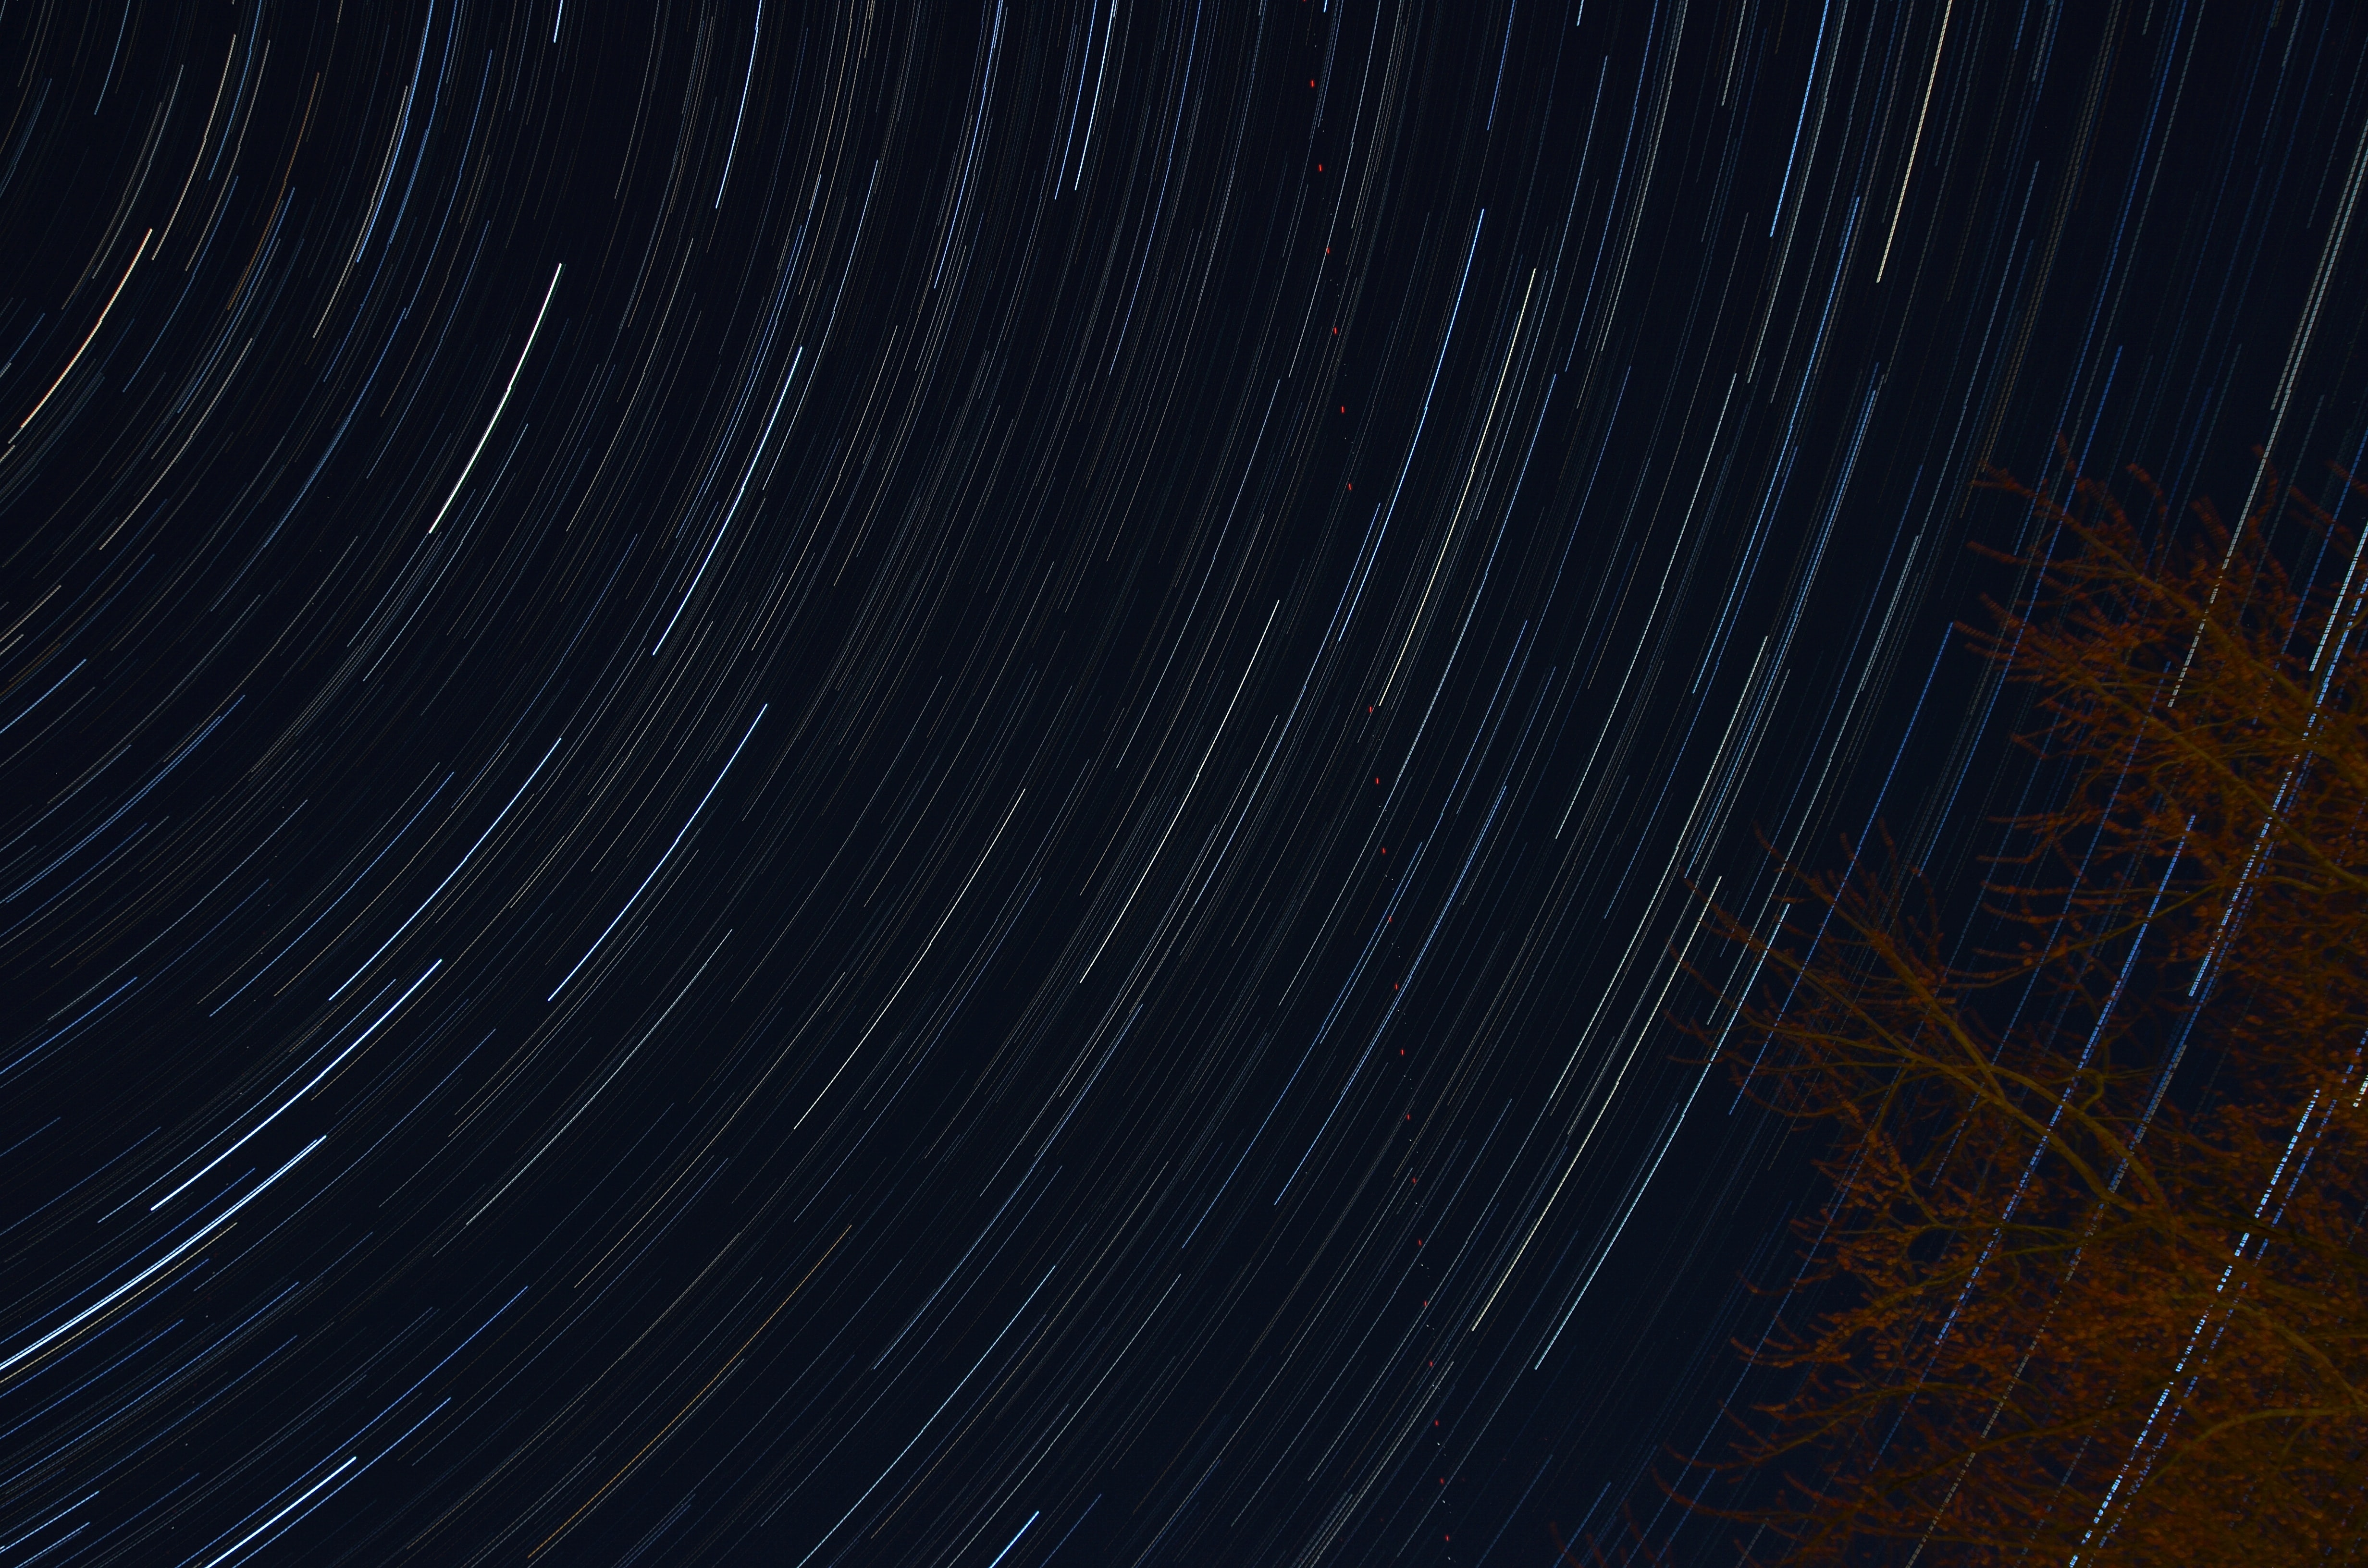 Star trails over the trees at night